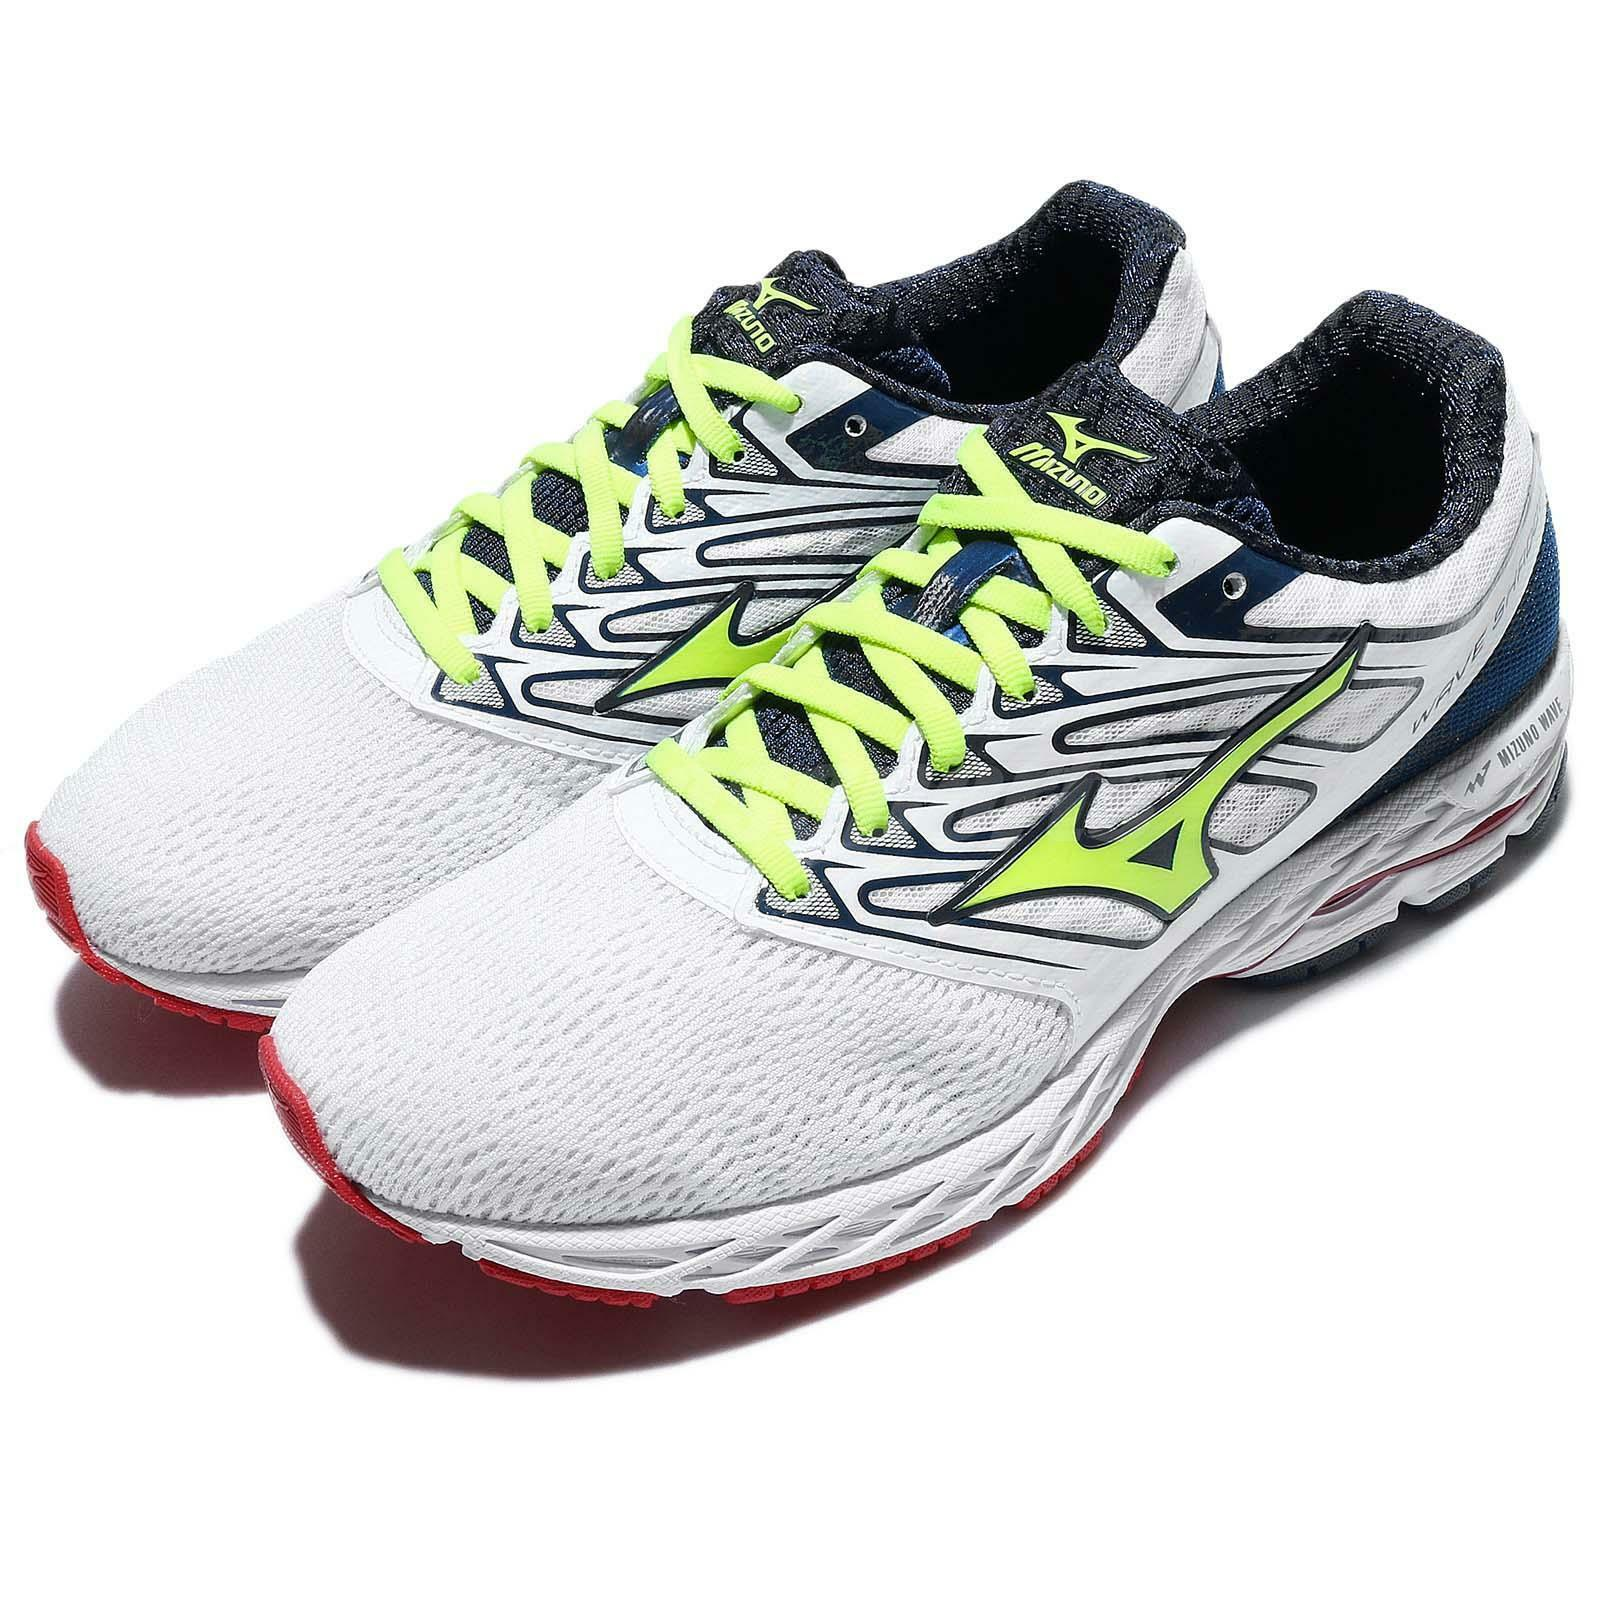 Mizuno Wave Shadow bianca Volt Uomo Running Shoes Trainers Scarpe da Ginnastica J1GC17-3047